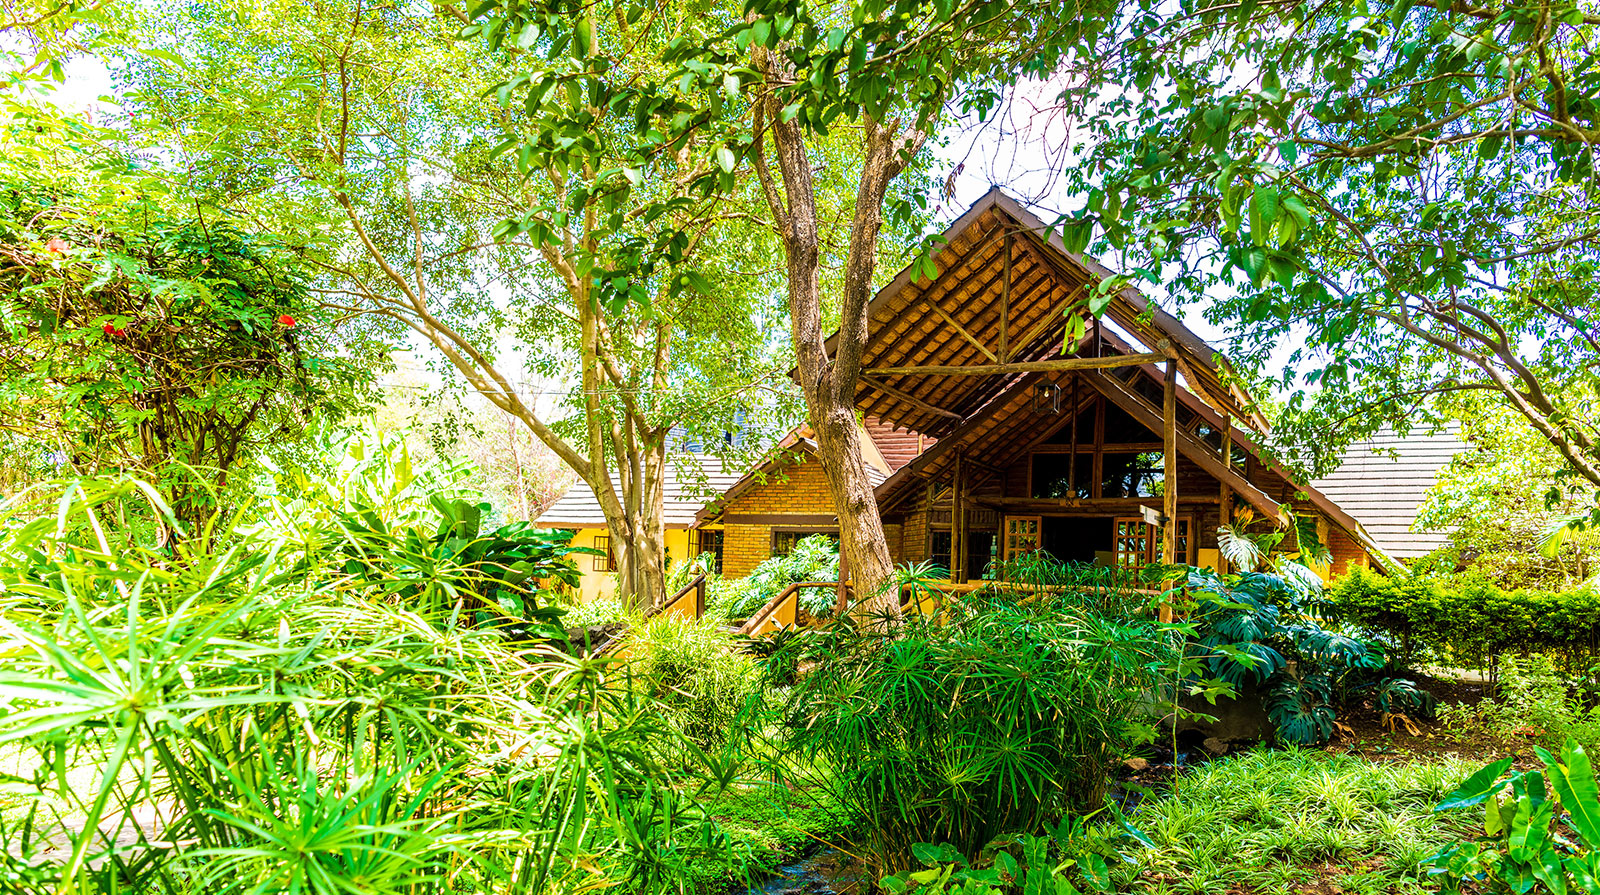 Arumeru Lodge - Elegant atmosphere